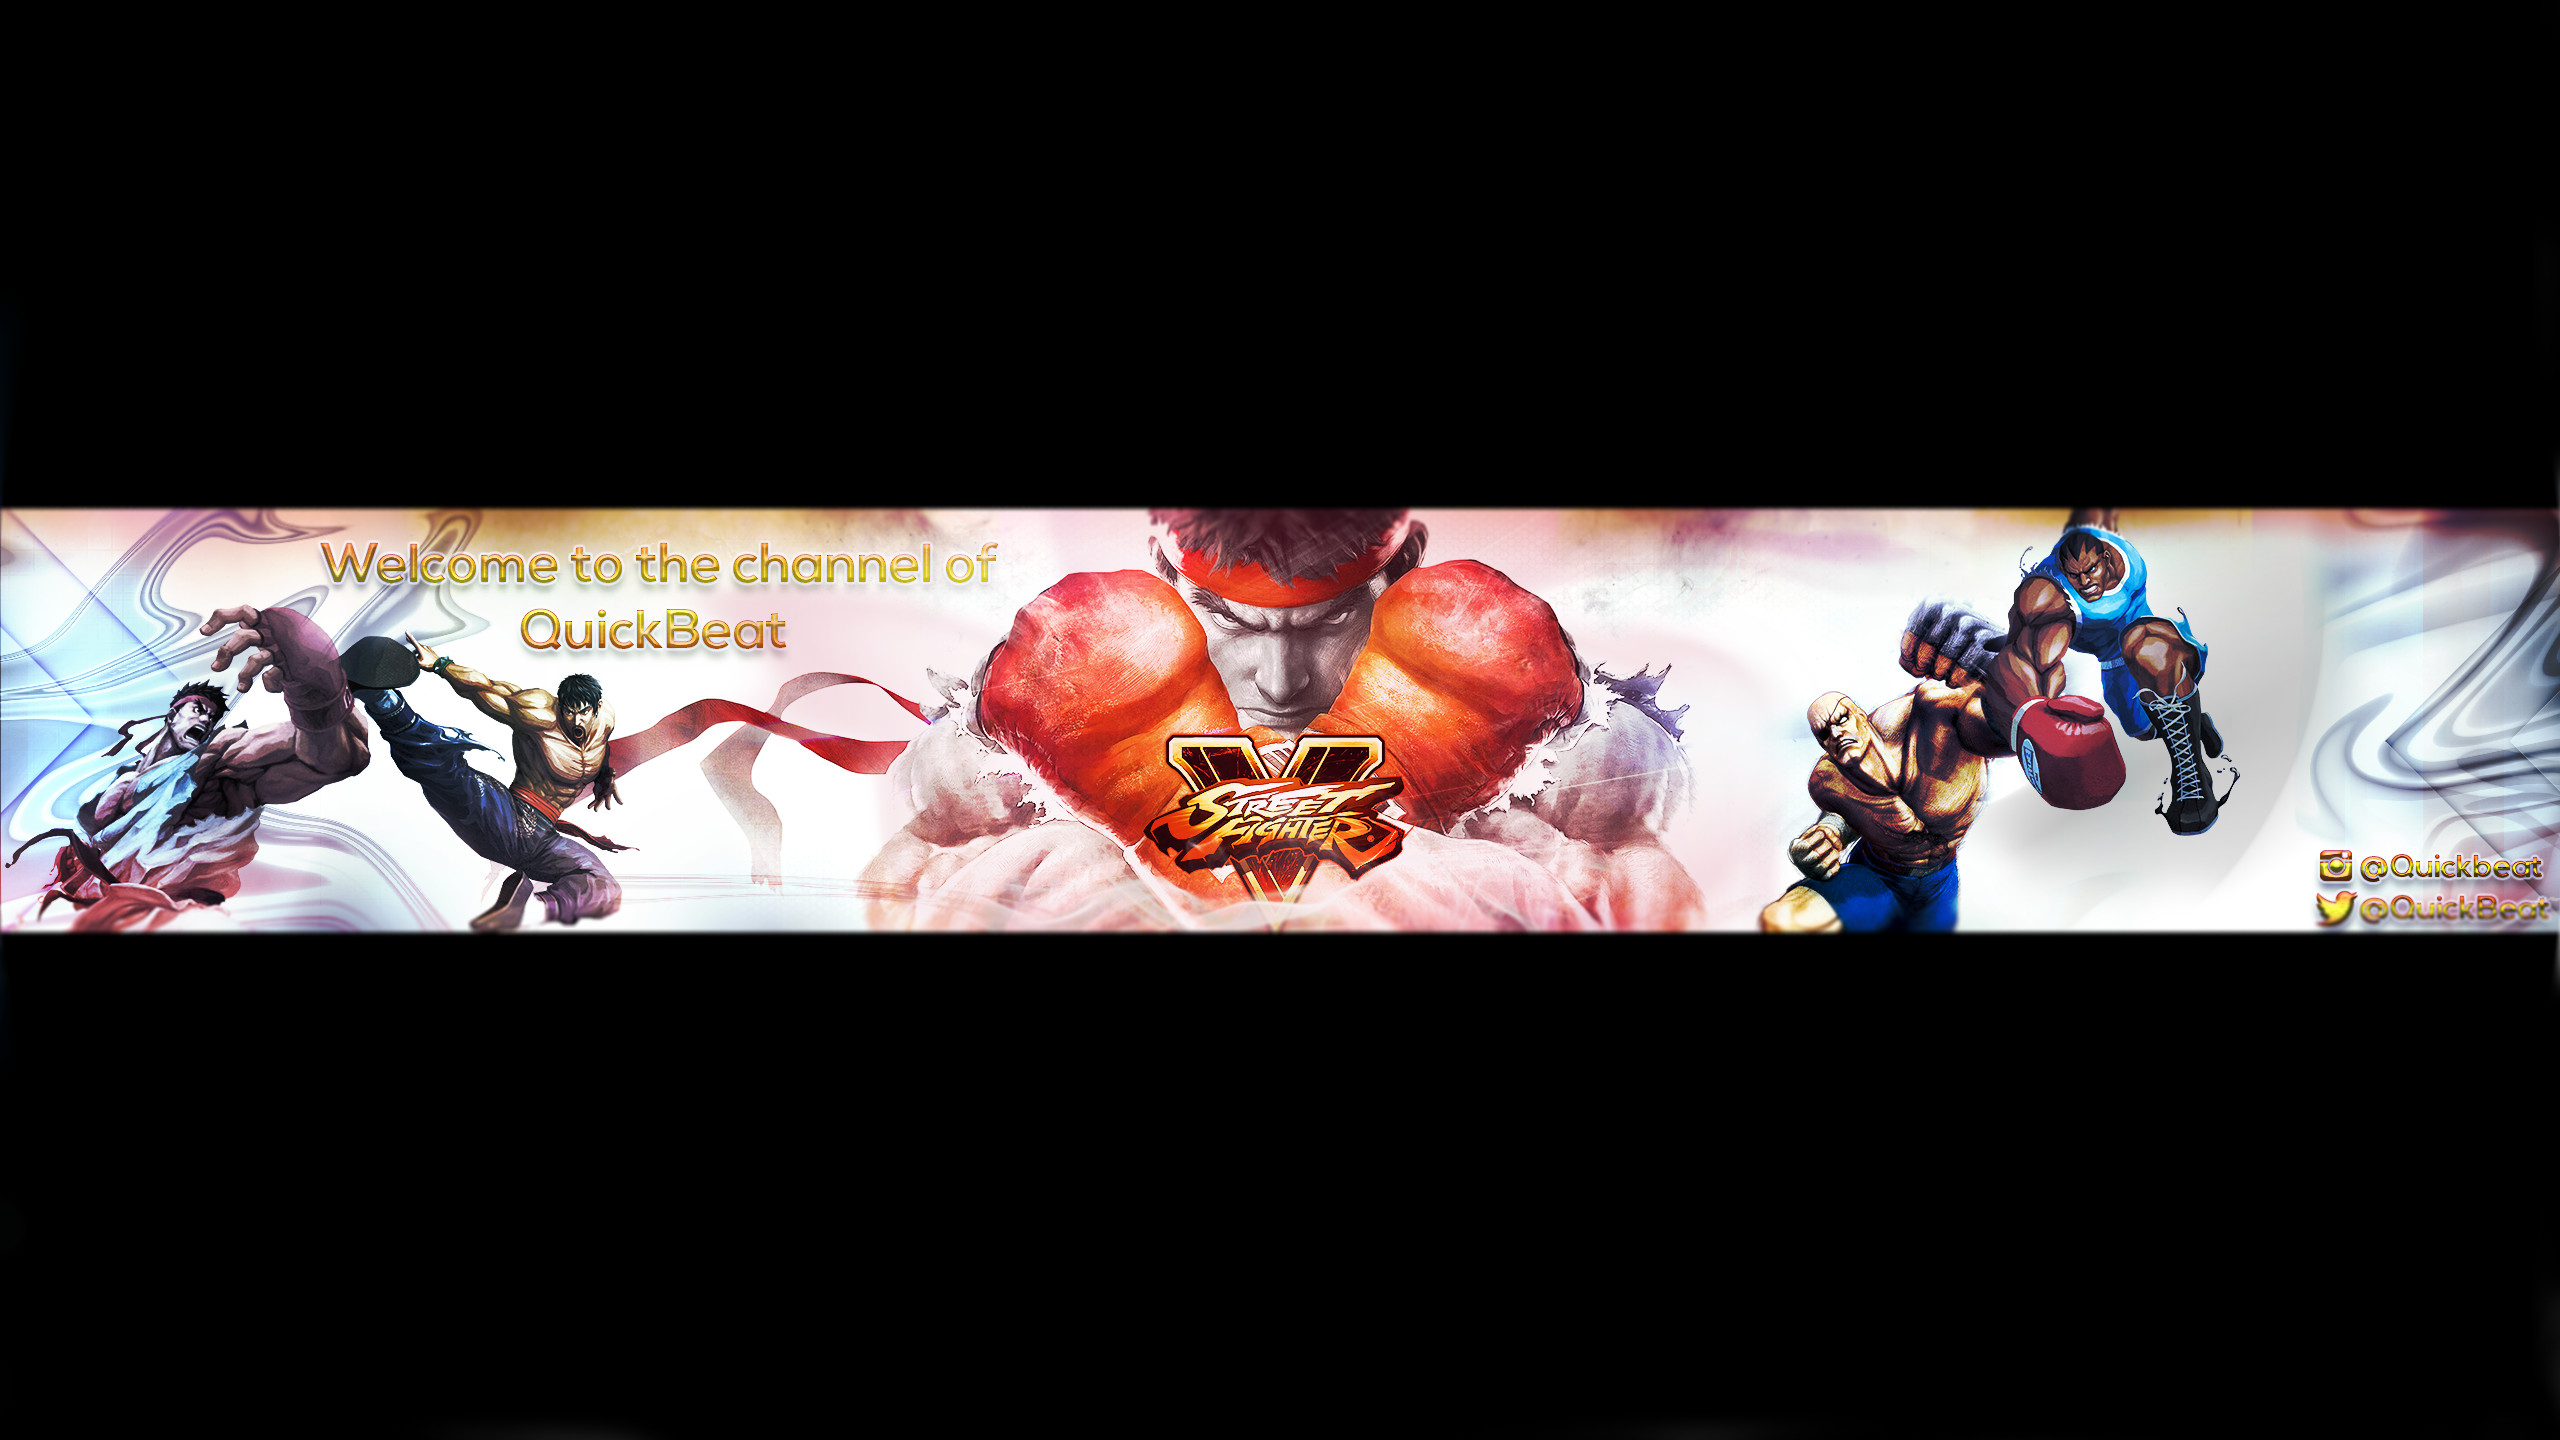 Street fighter 5 youtube banner by QuickBeat on DeviantArt